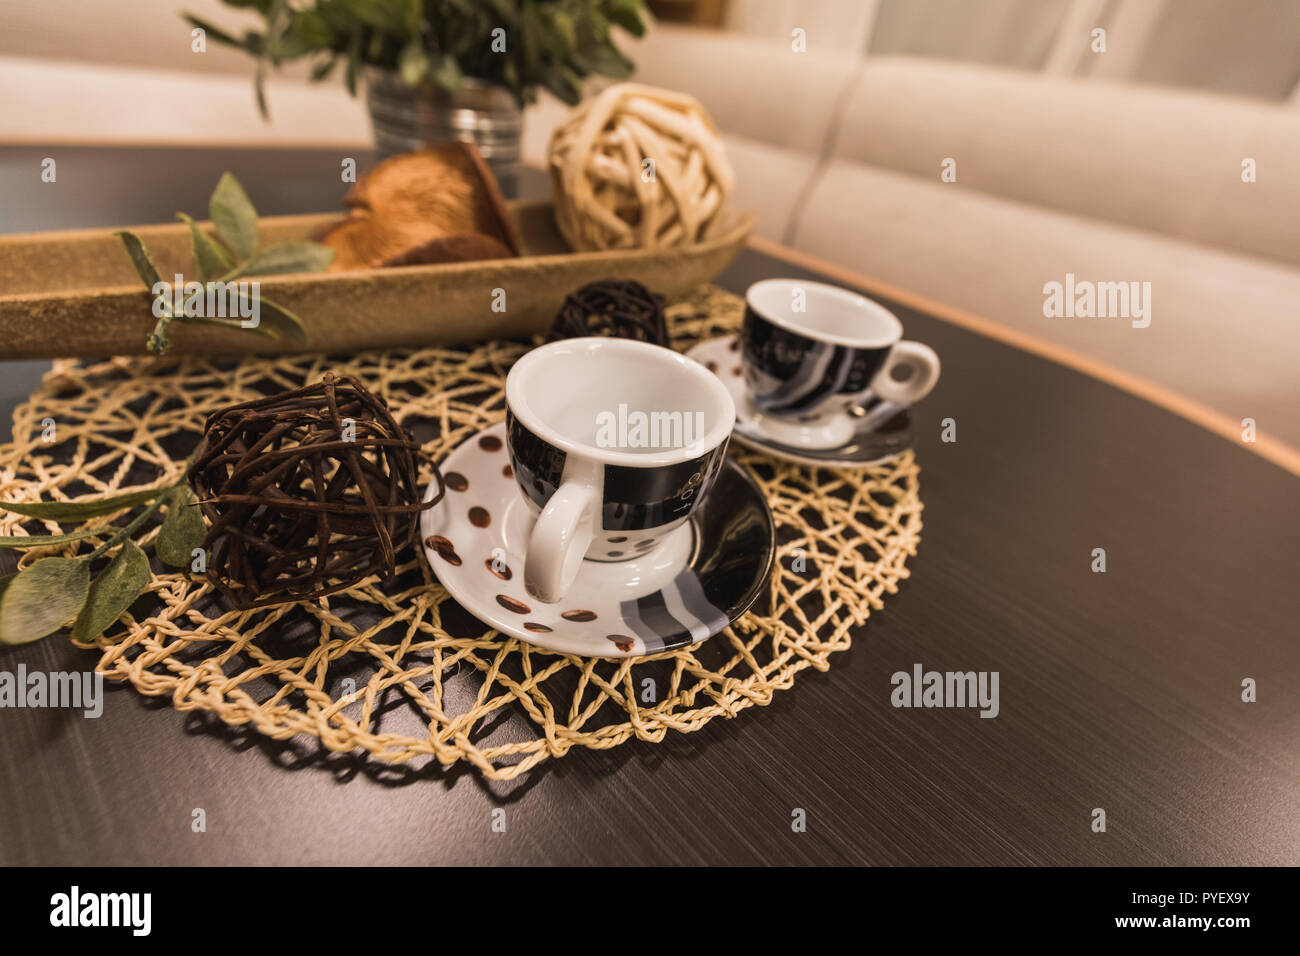 Decorative Straw Balls In Different Colors And Coffee Cups On A Table Inside A Caravan Switzerland Stock Photo Alamy